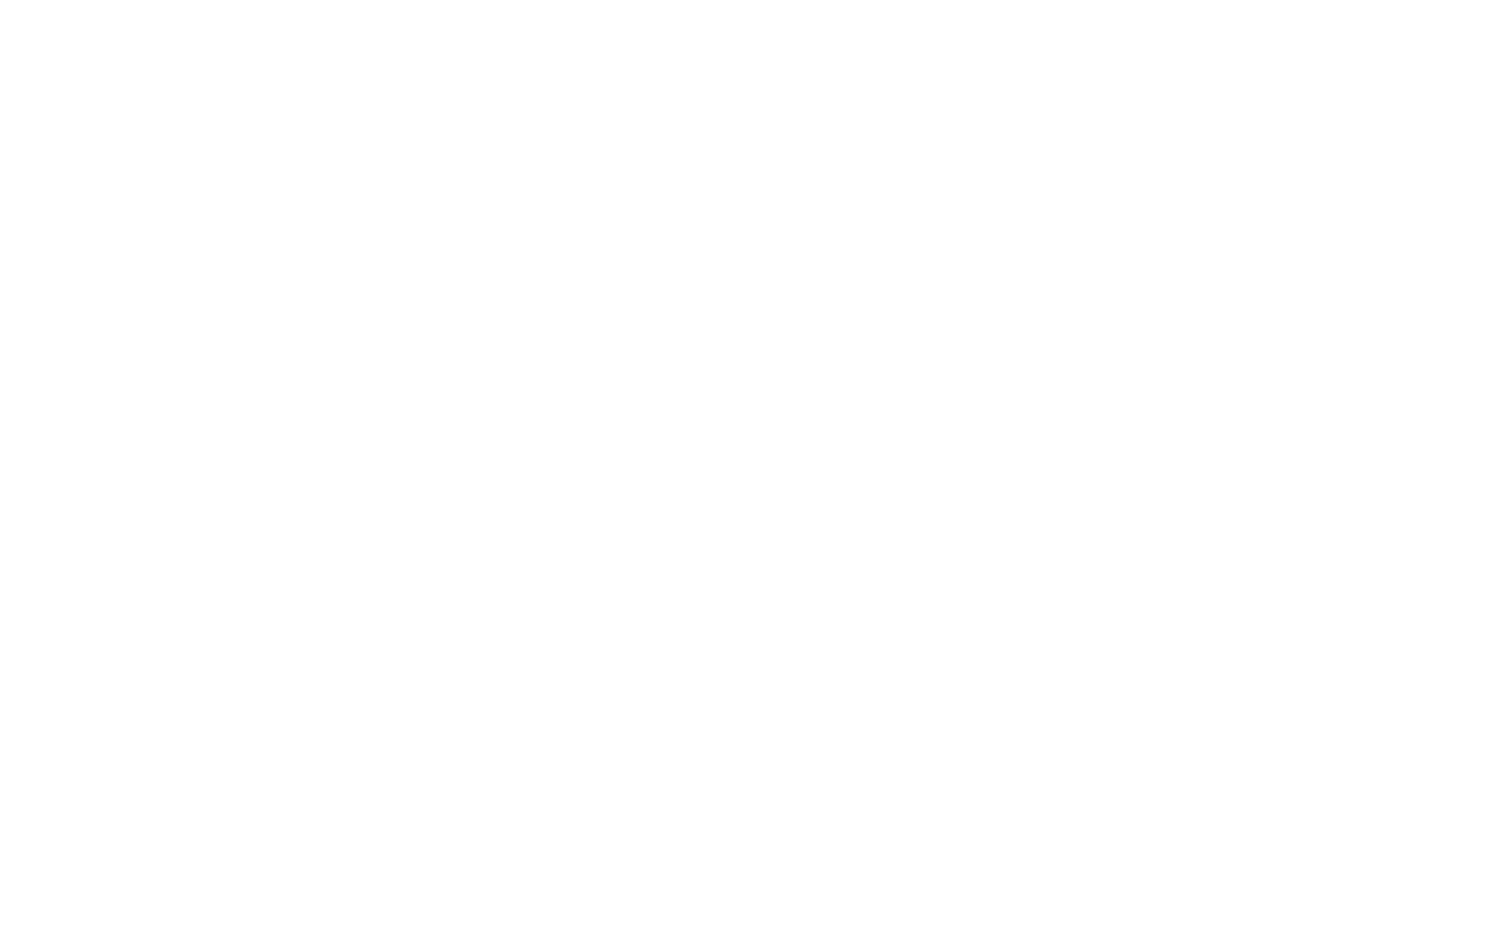 UK Innovation Council